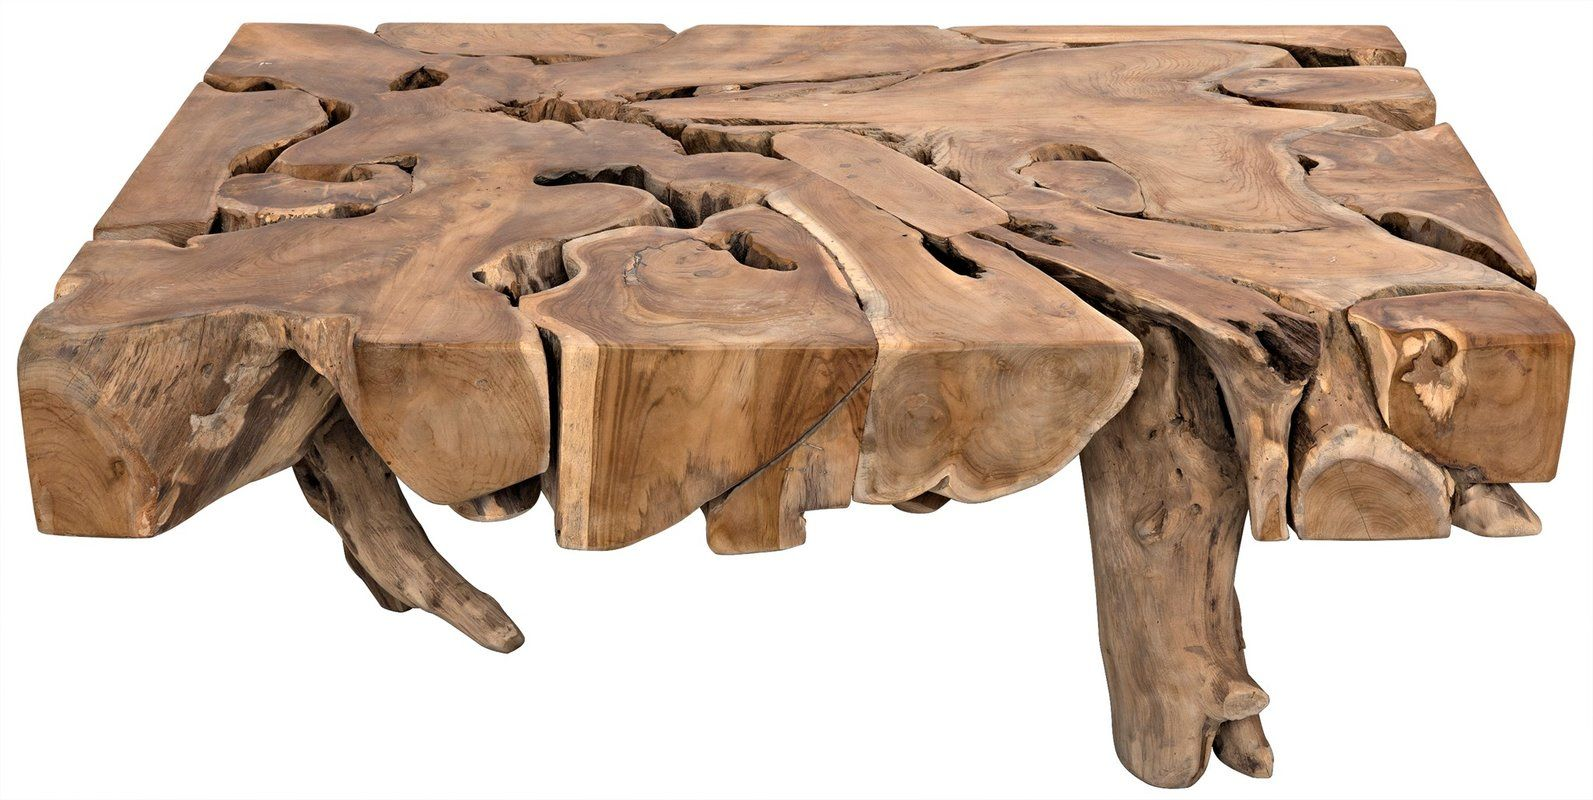 Teak Root Coffee Table | Stone coffee table, Coffee table ...